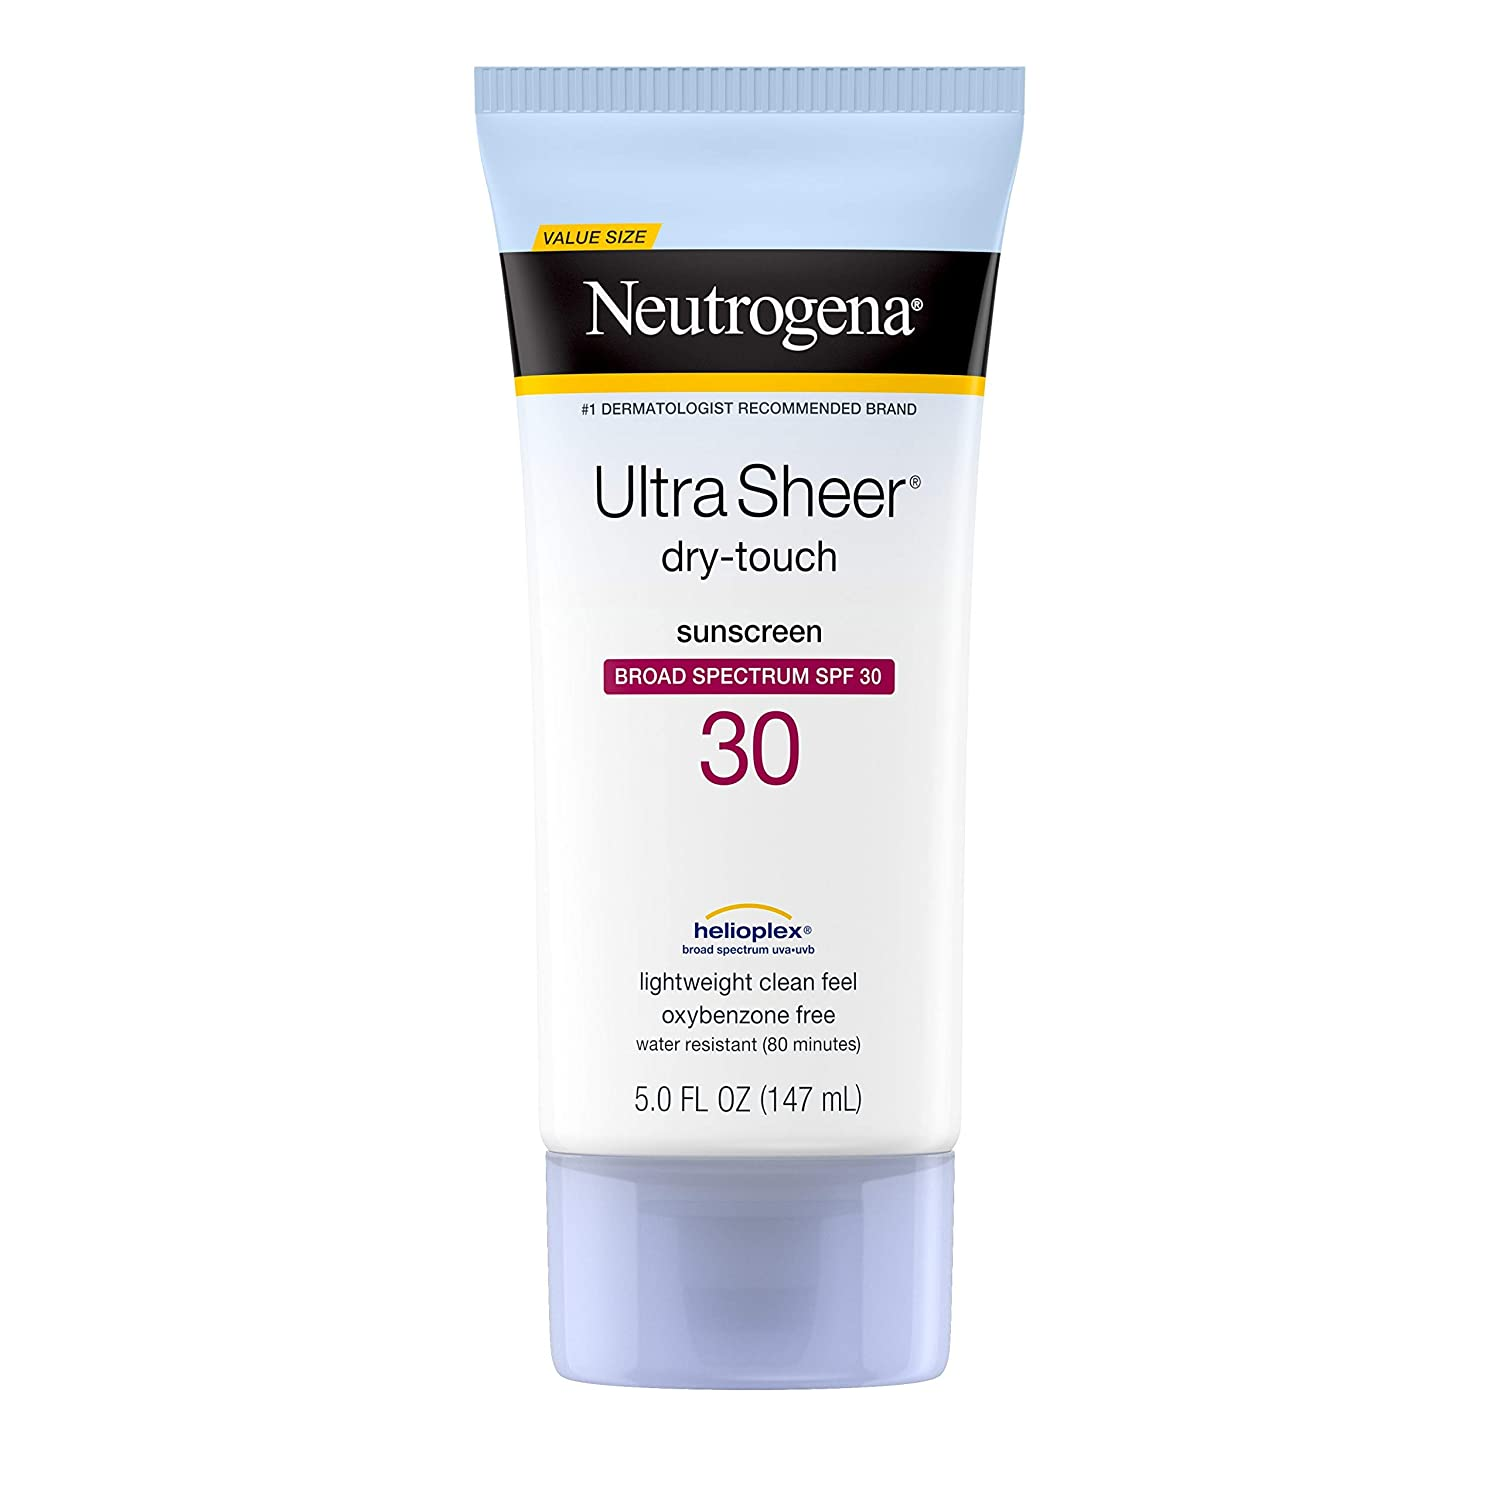 Neutrogena Ultra Sheer Dry-Touch Sunscreen Lotion with Broad Spectrum SPF 30 UVA/UVB Protection, Oxybenzone-Free, Lightweight, Water Resistant, Non-Comedogenic and Non-Greasy, 5 fl. oz